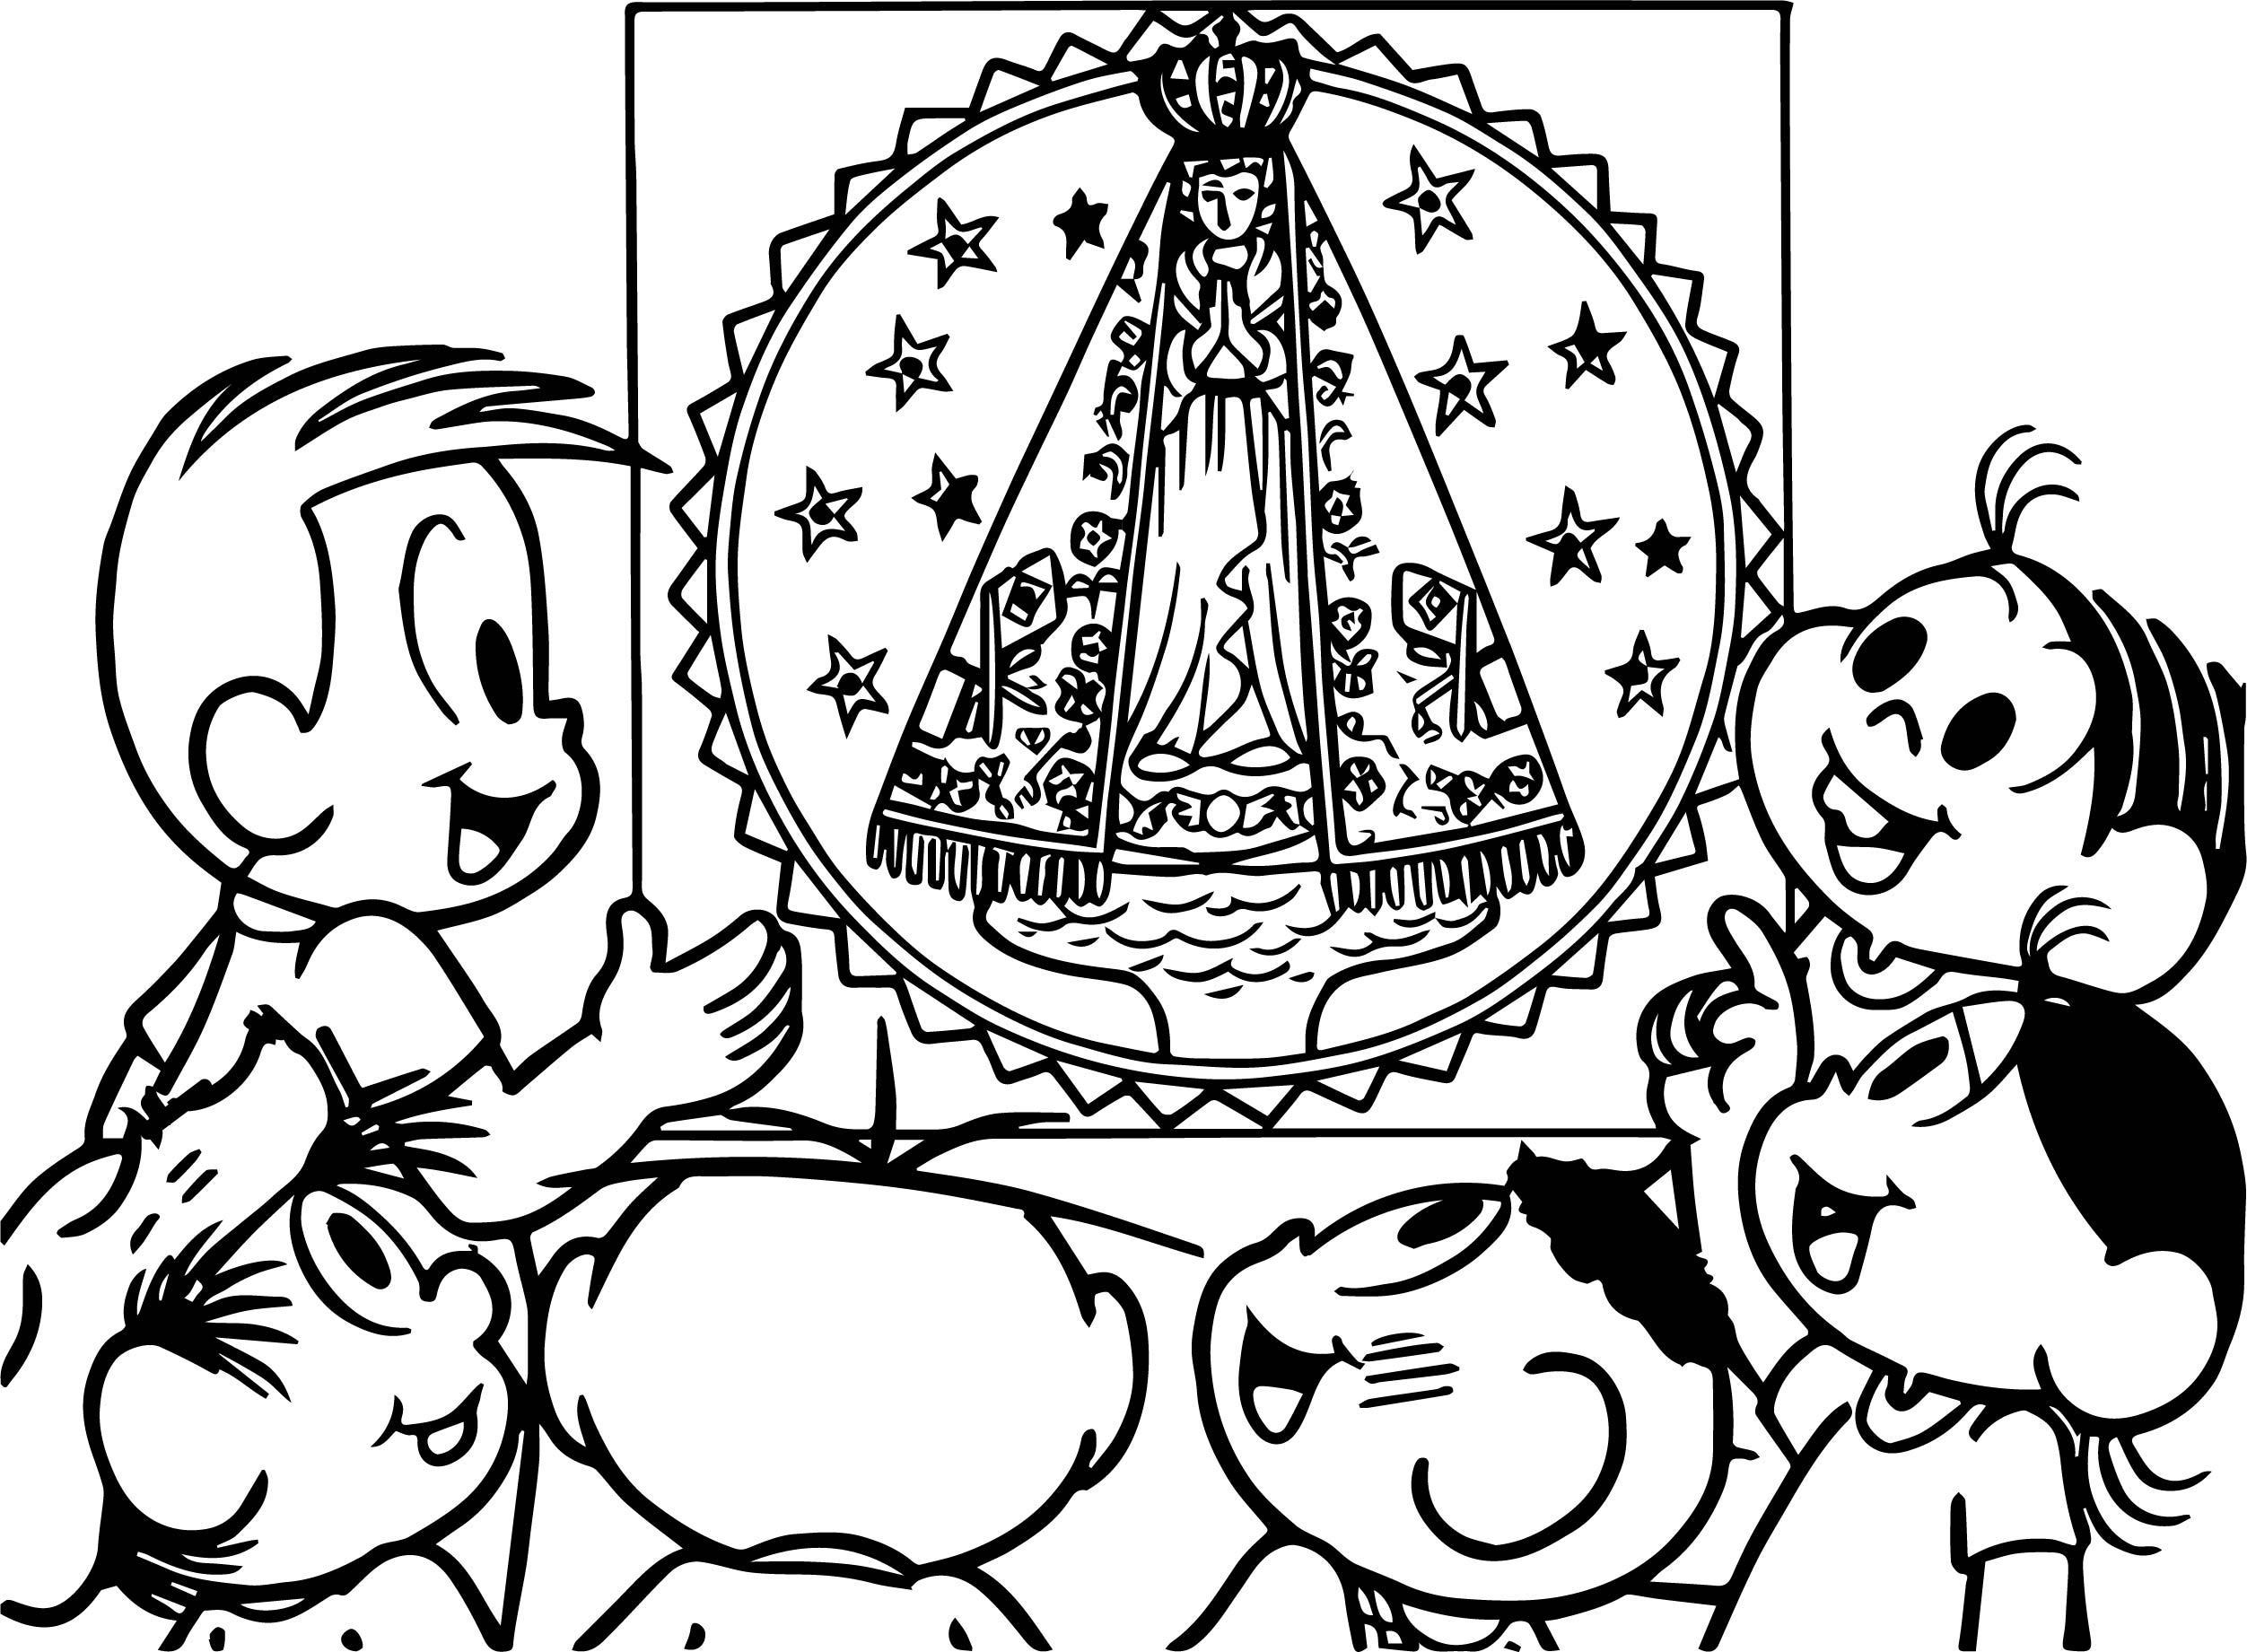 Turma Da Monica Visit With Friends Coloring Page